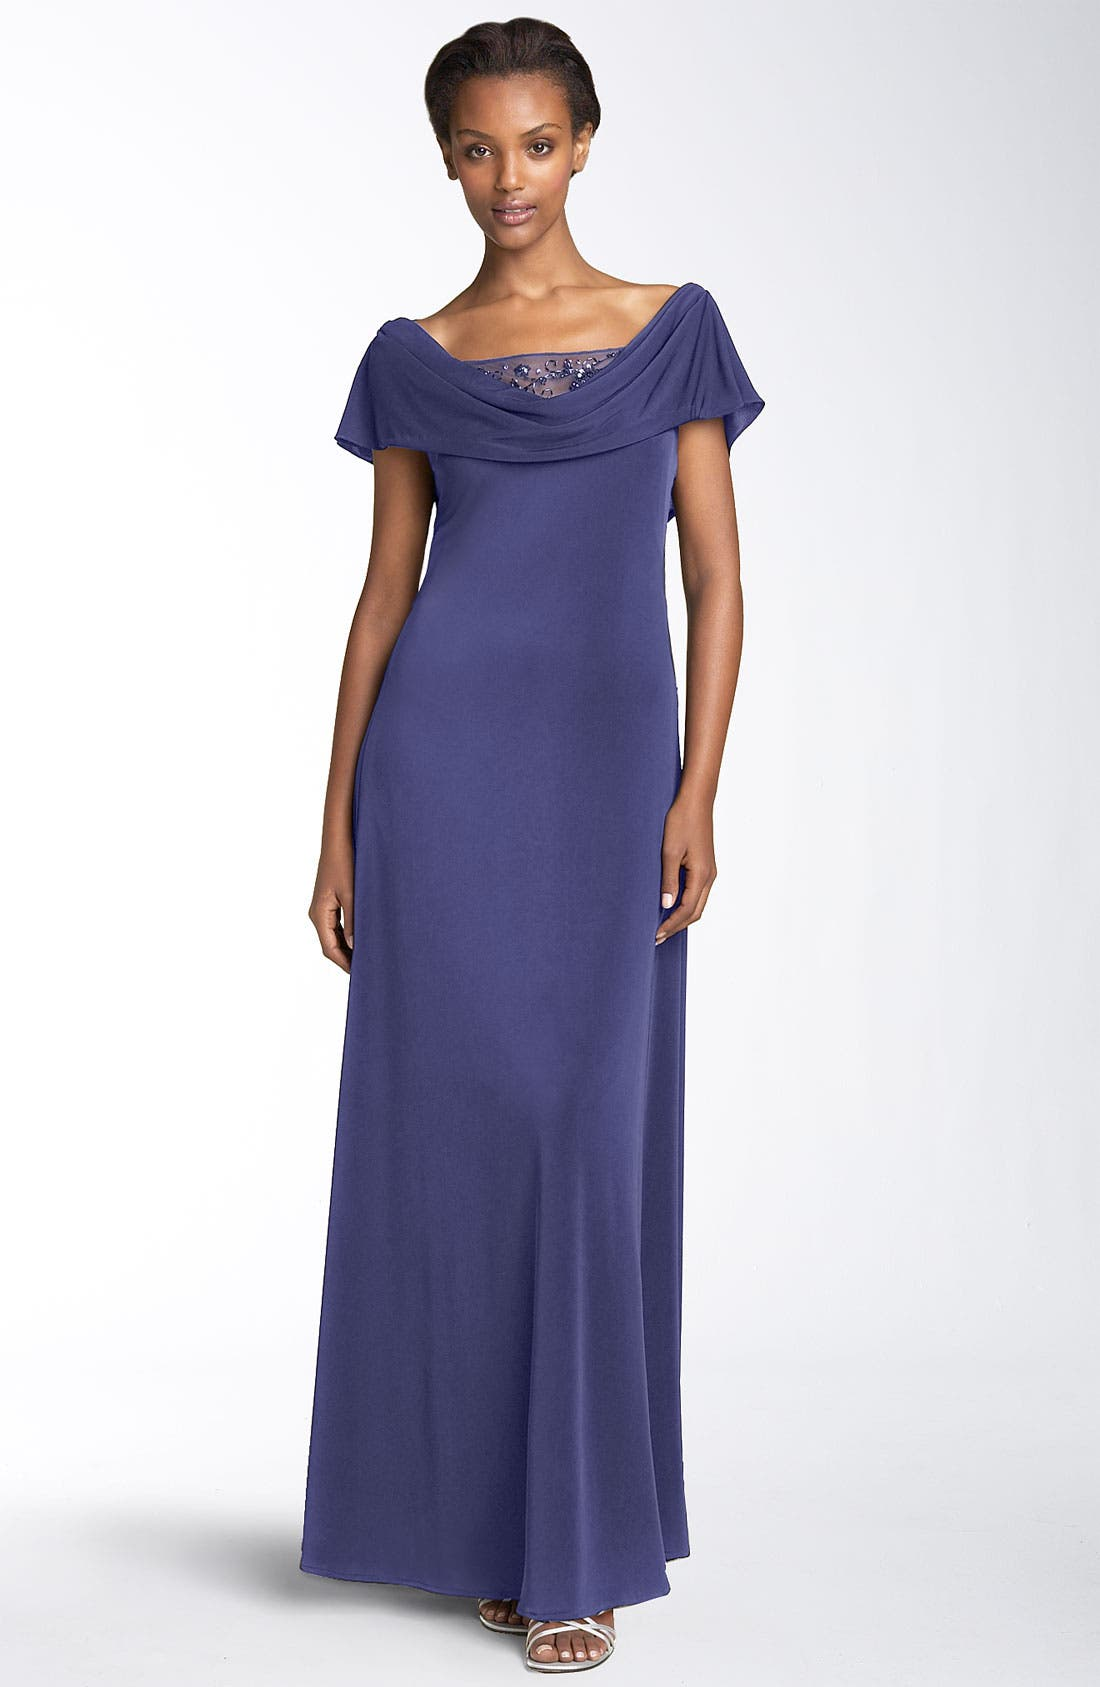 Main Image - Patra Drape Neck Gown with Beaded Illusion Mesh